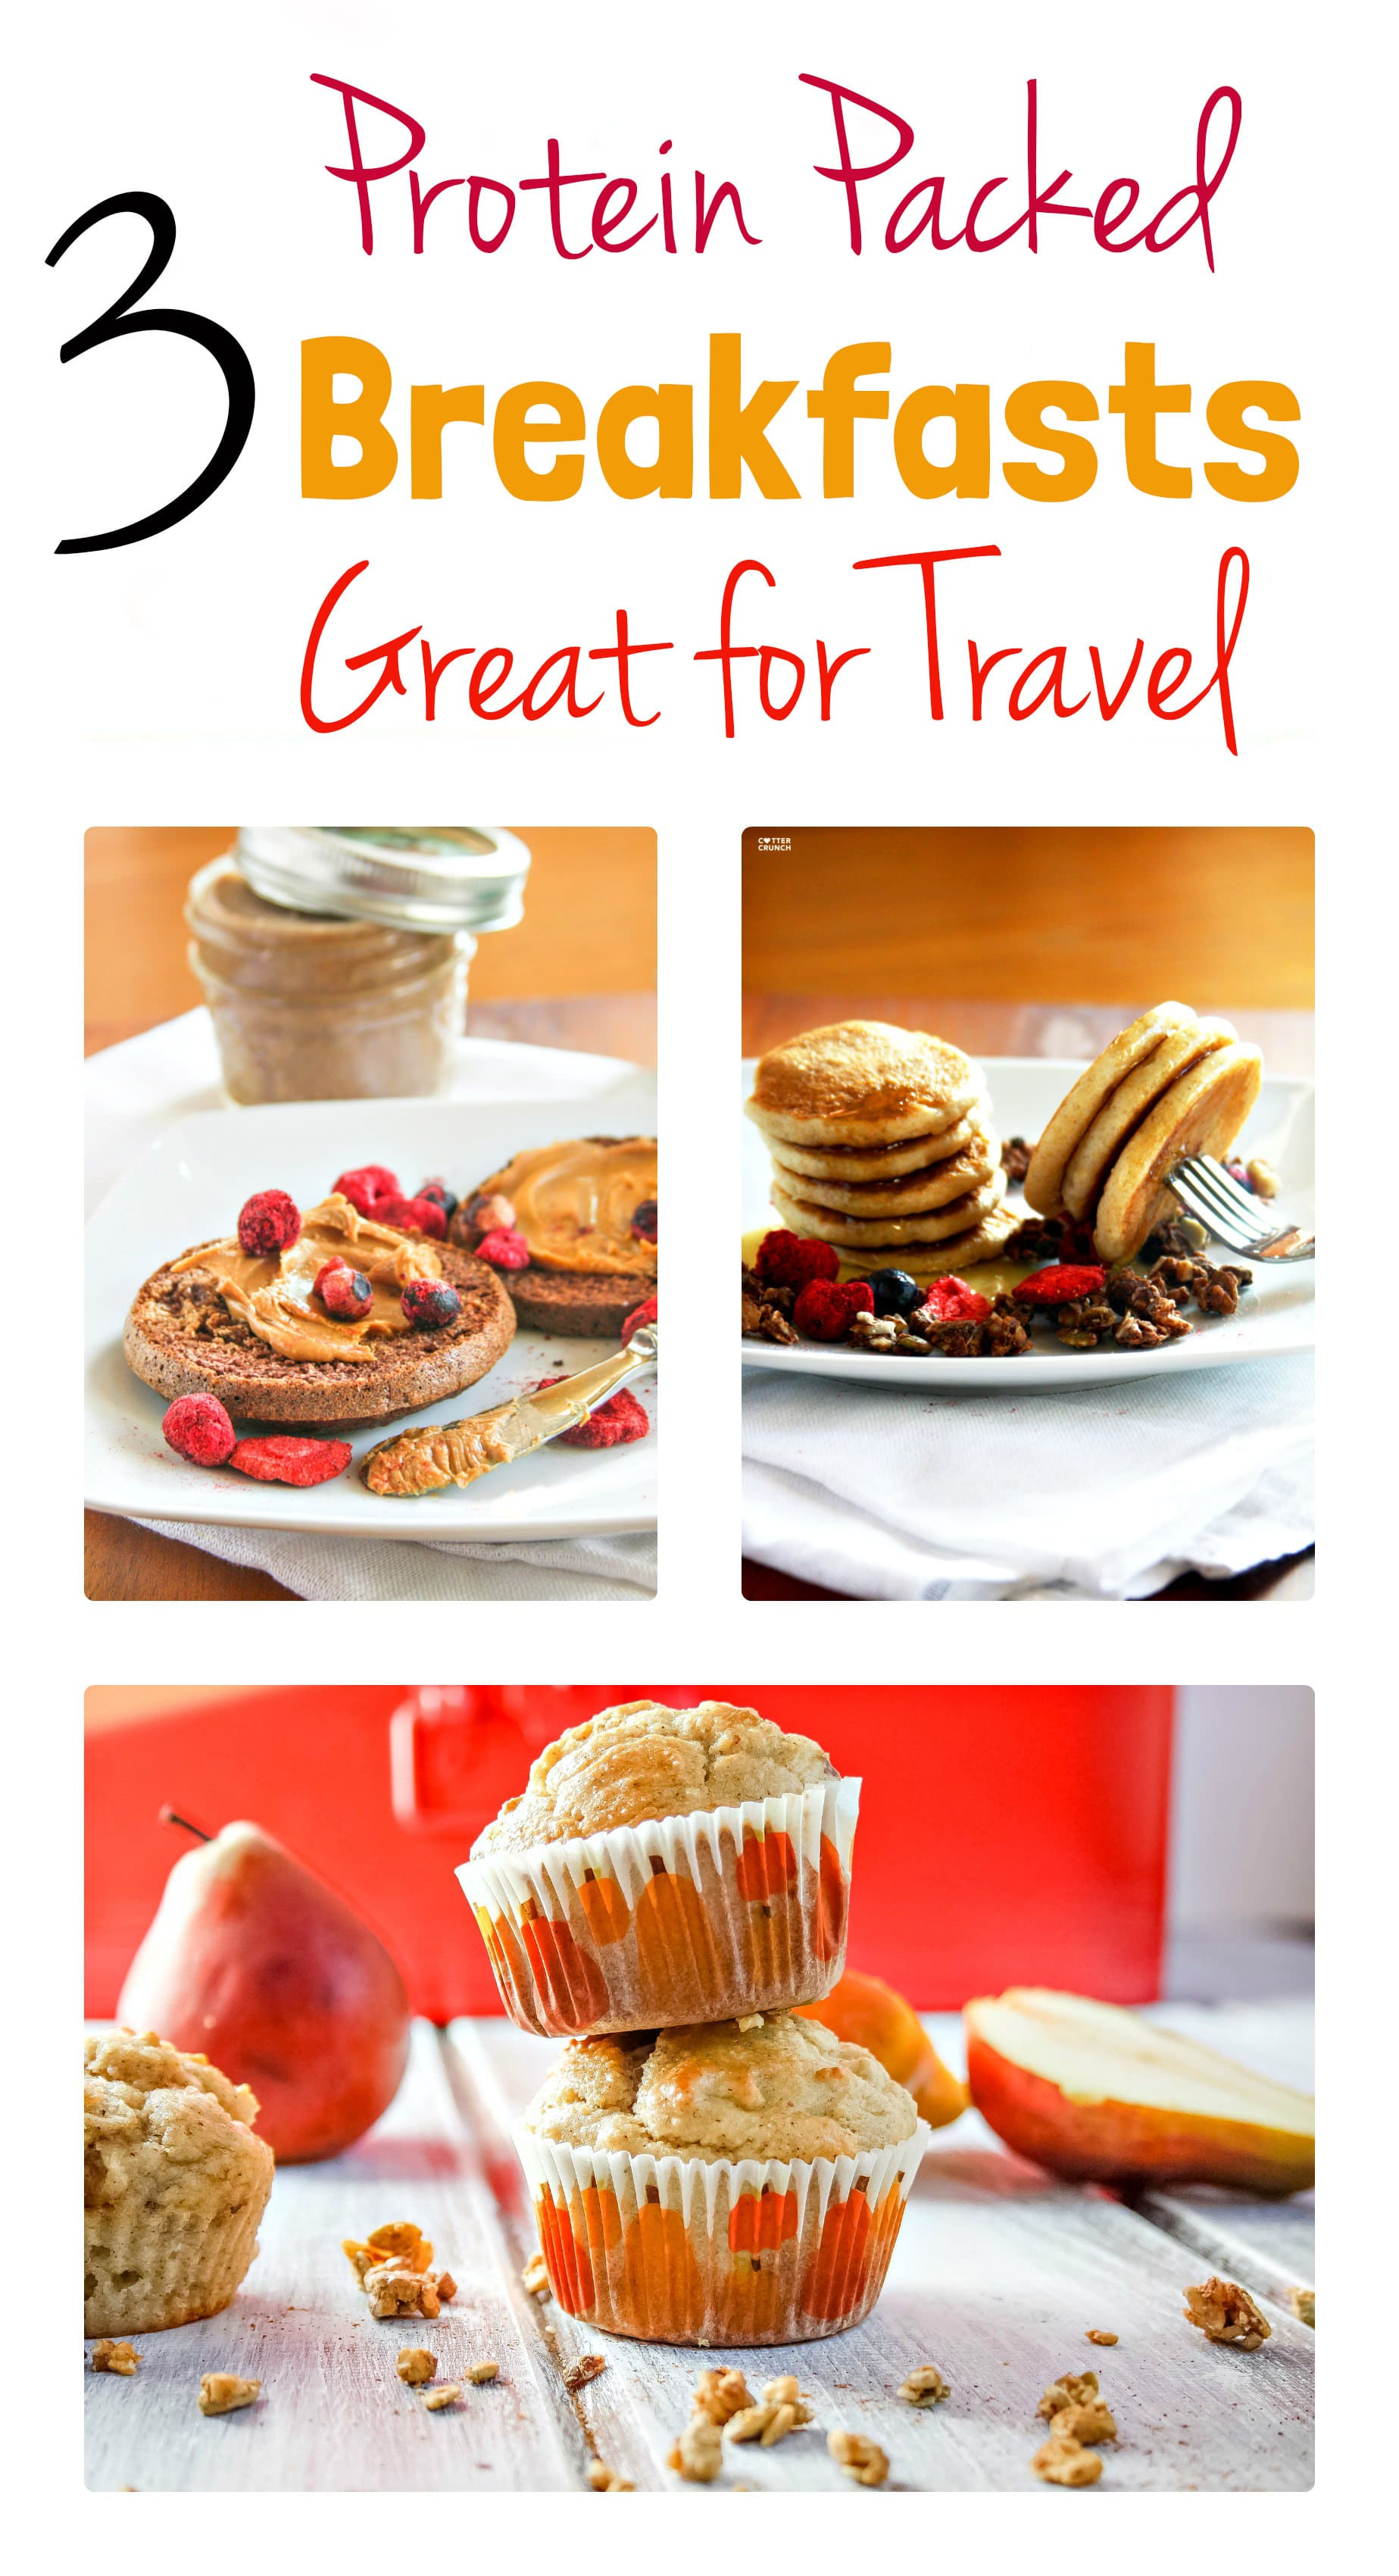 3 Portable Gluten Free Breakfasts with Protein. These recipes are great for travel! On the go, in air, or on the road! Easy to make and simply delicious. www.cottercrunch.com